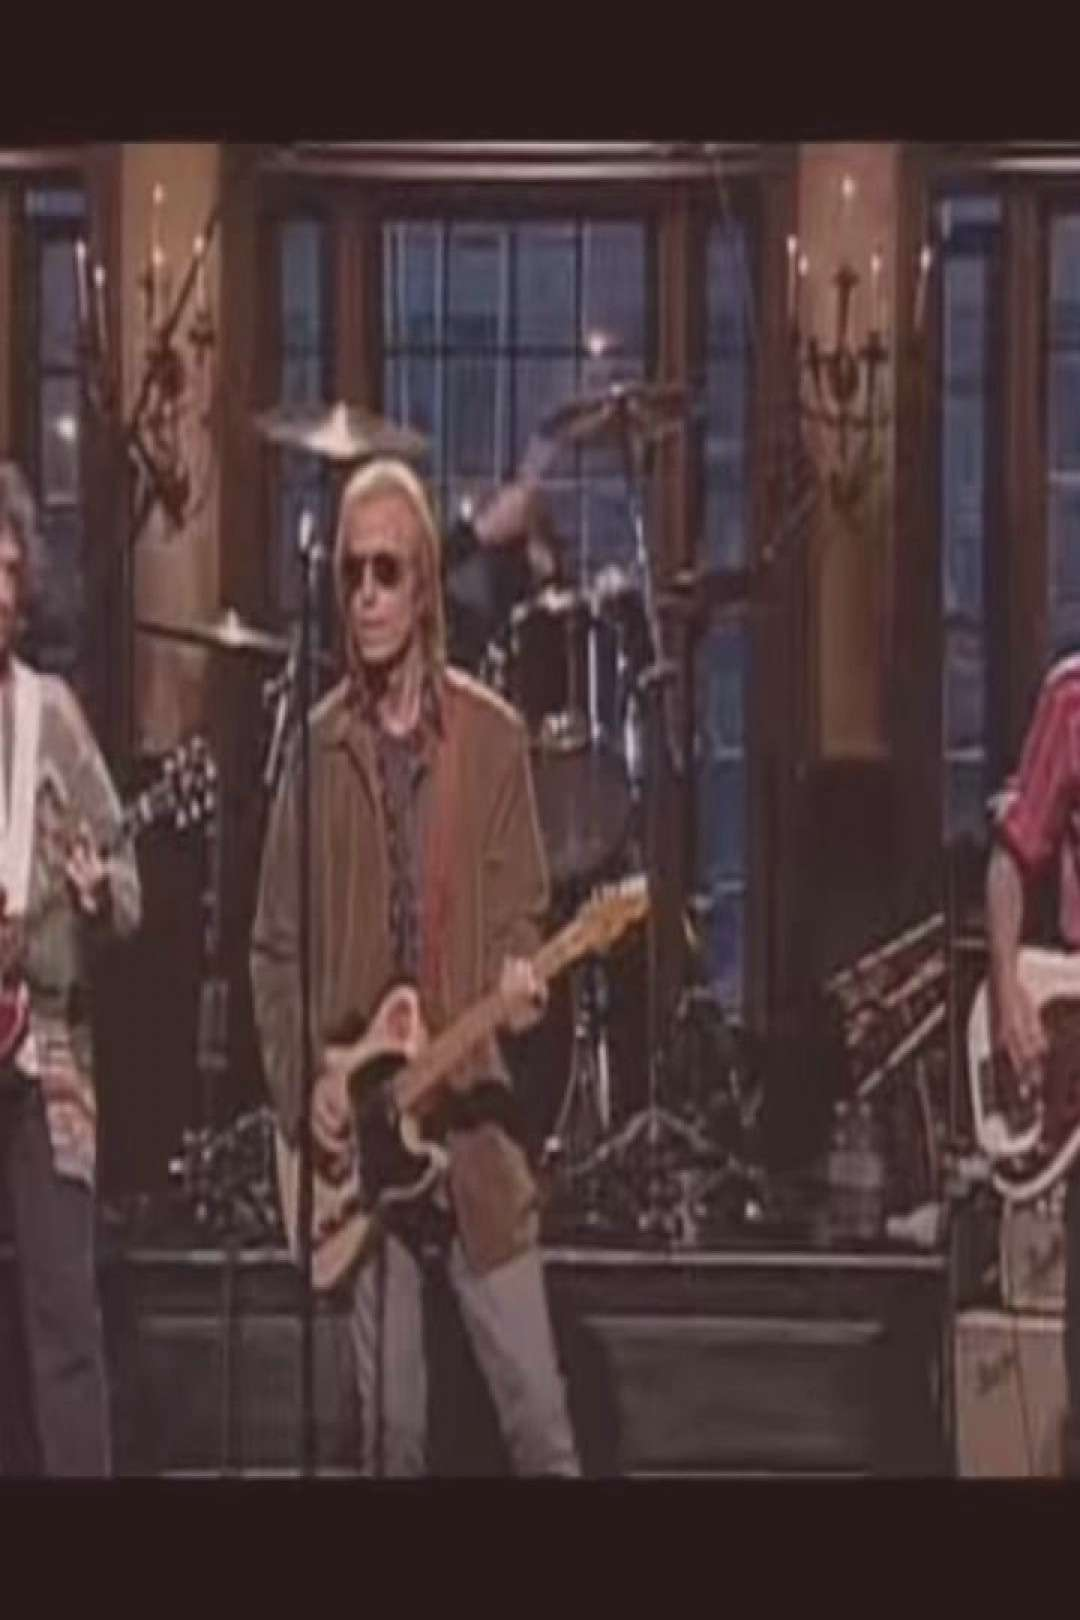 Back when Dave Grohl played with the Heartbreakers in SNL! . Kill